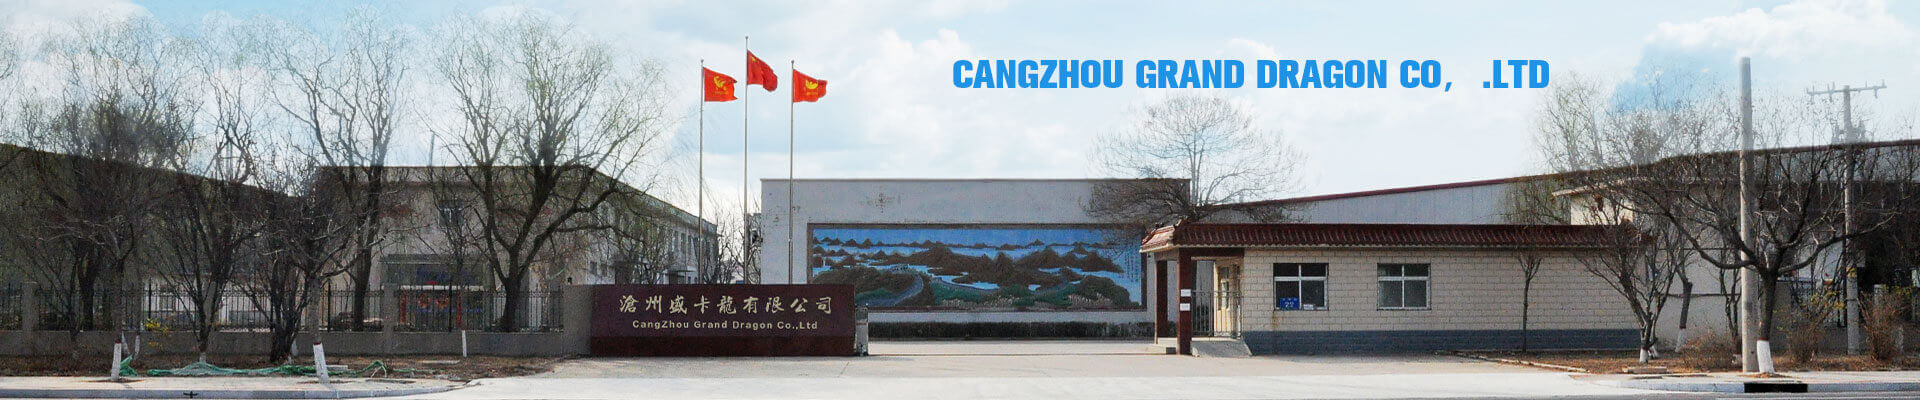 Cangzhou Grand Dragon Trading Co., Ltd.